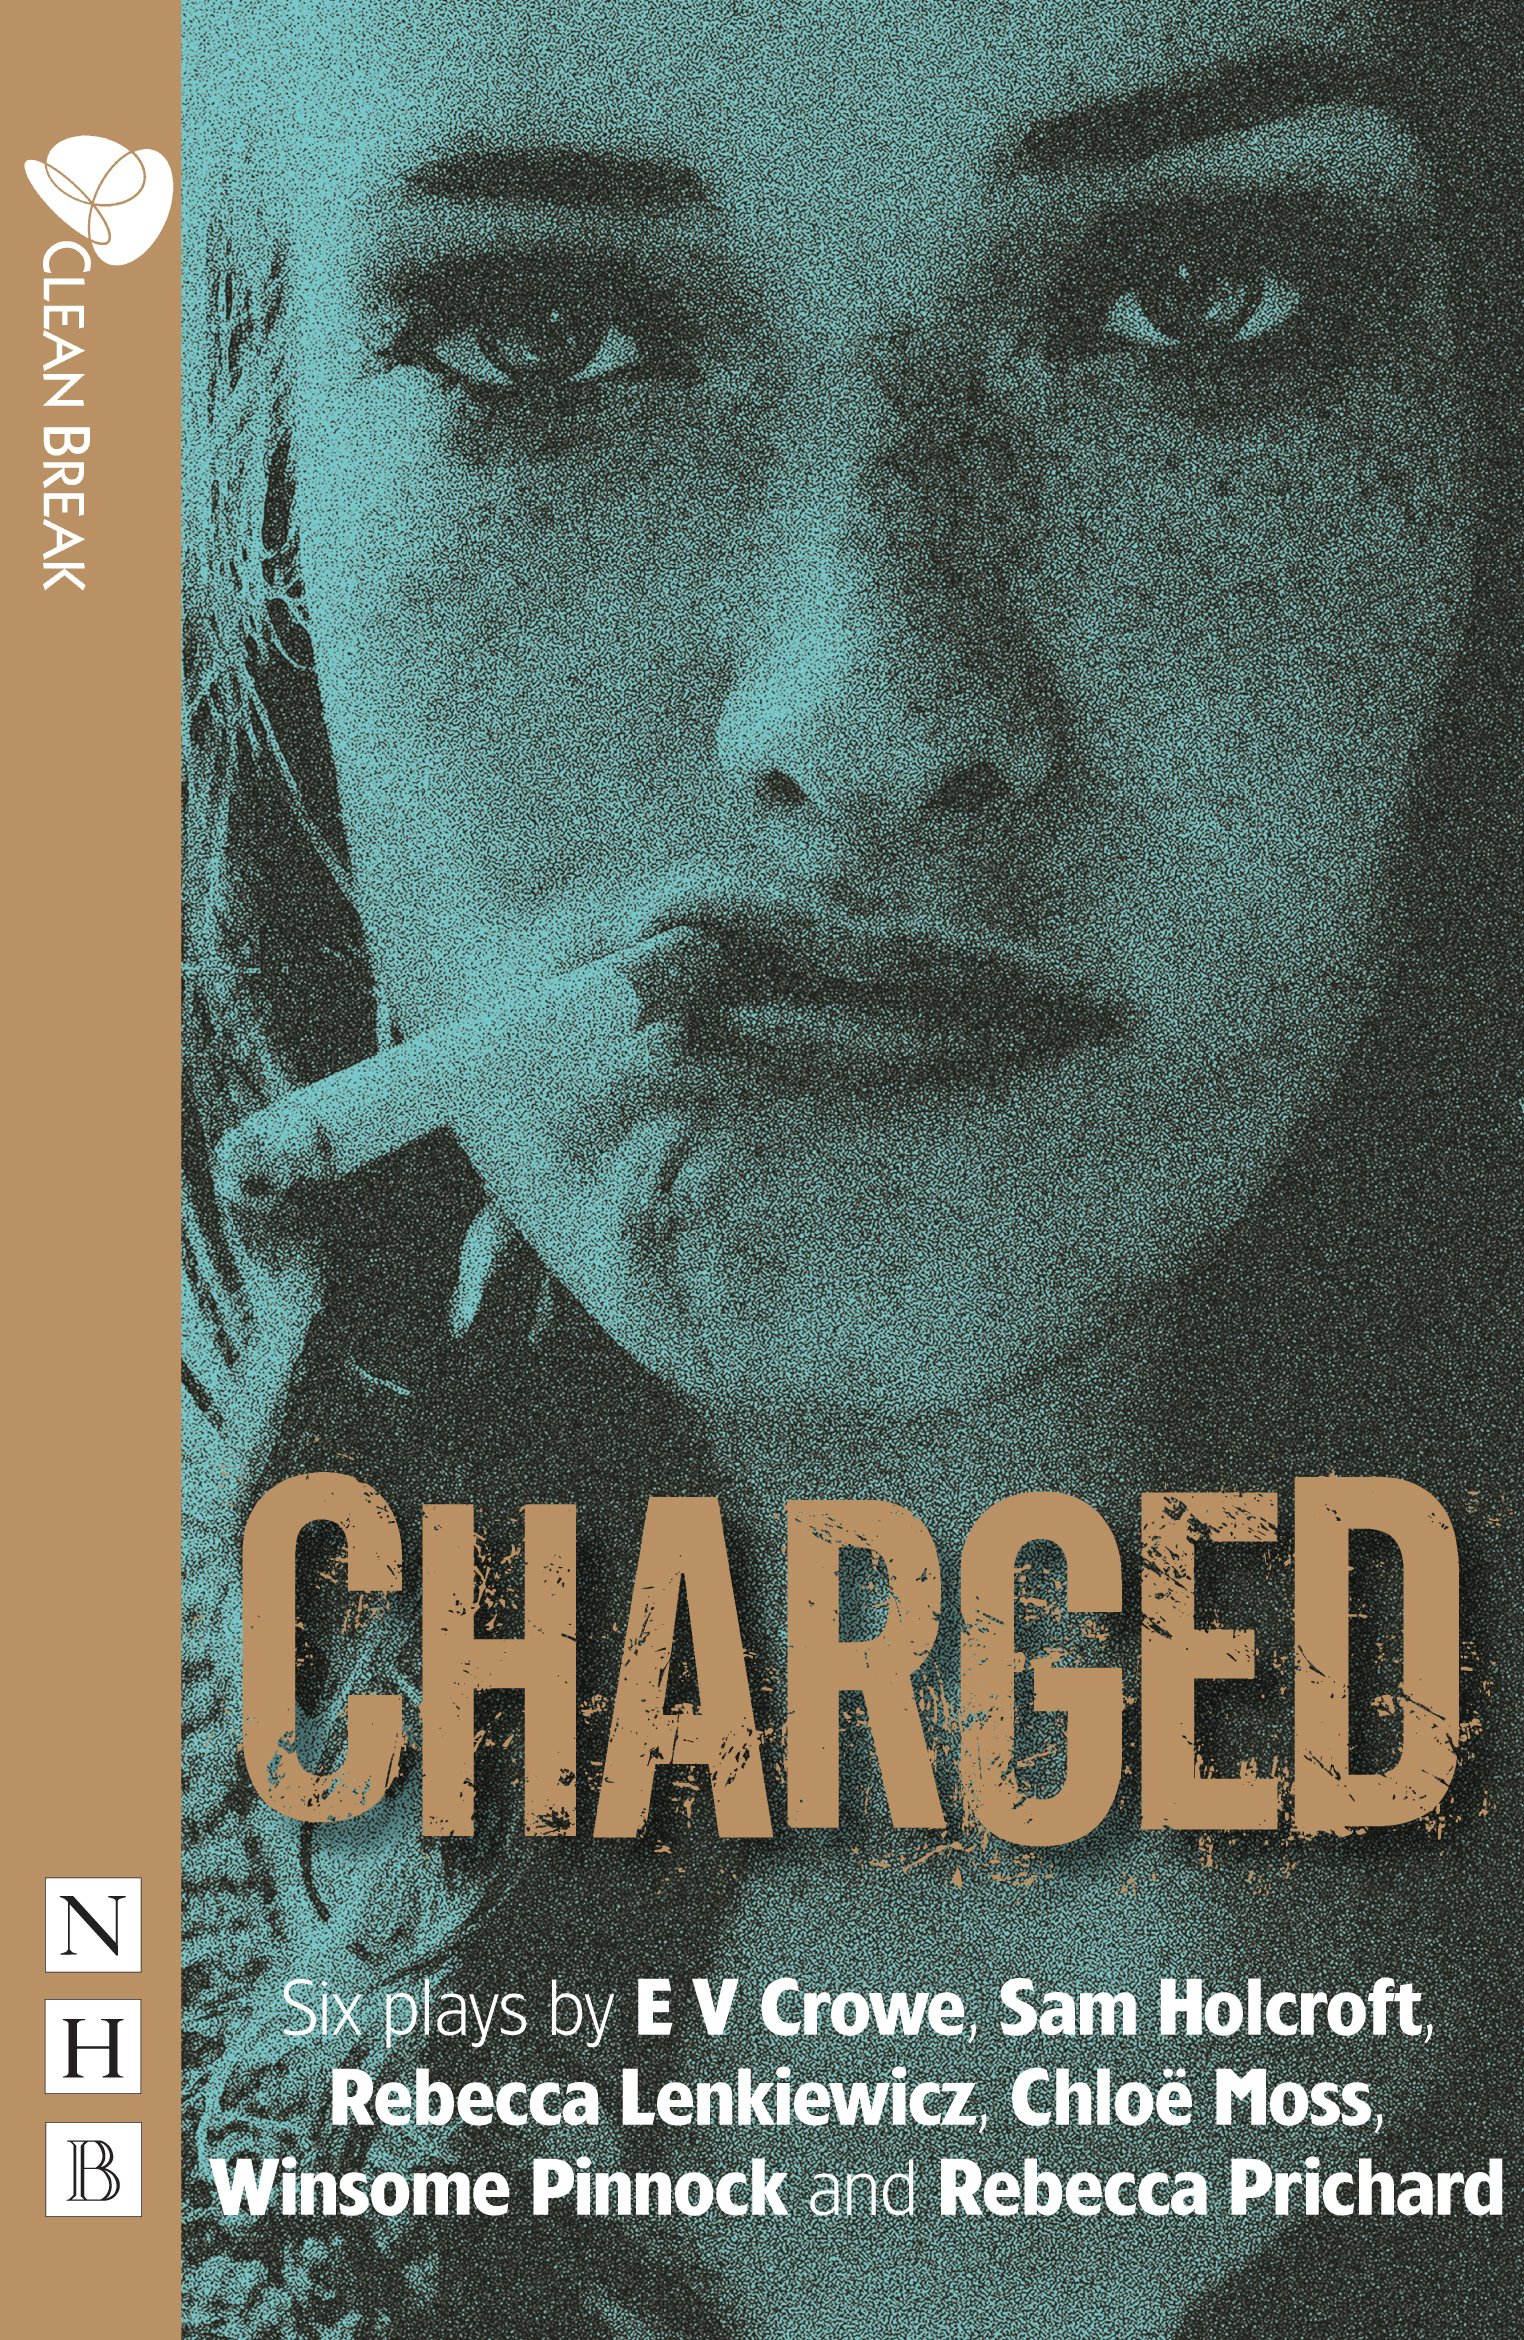 Charged (NHB Modern Plays): Six plays about women crime and justice (English Edition)